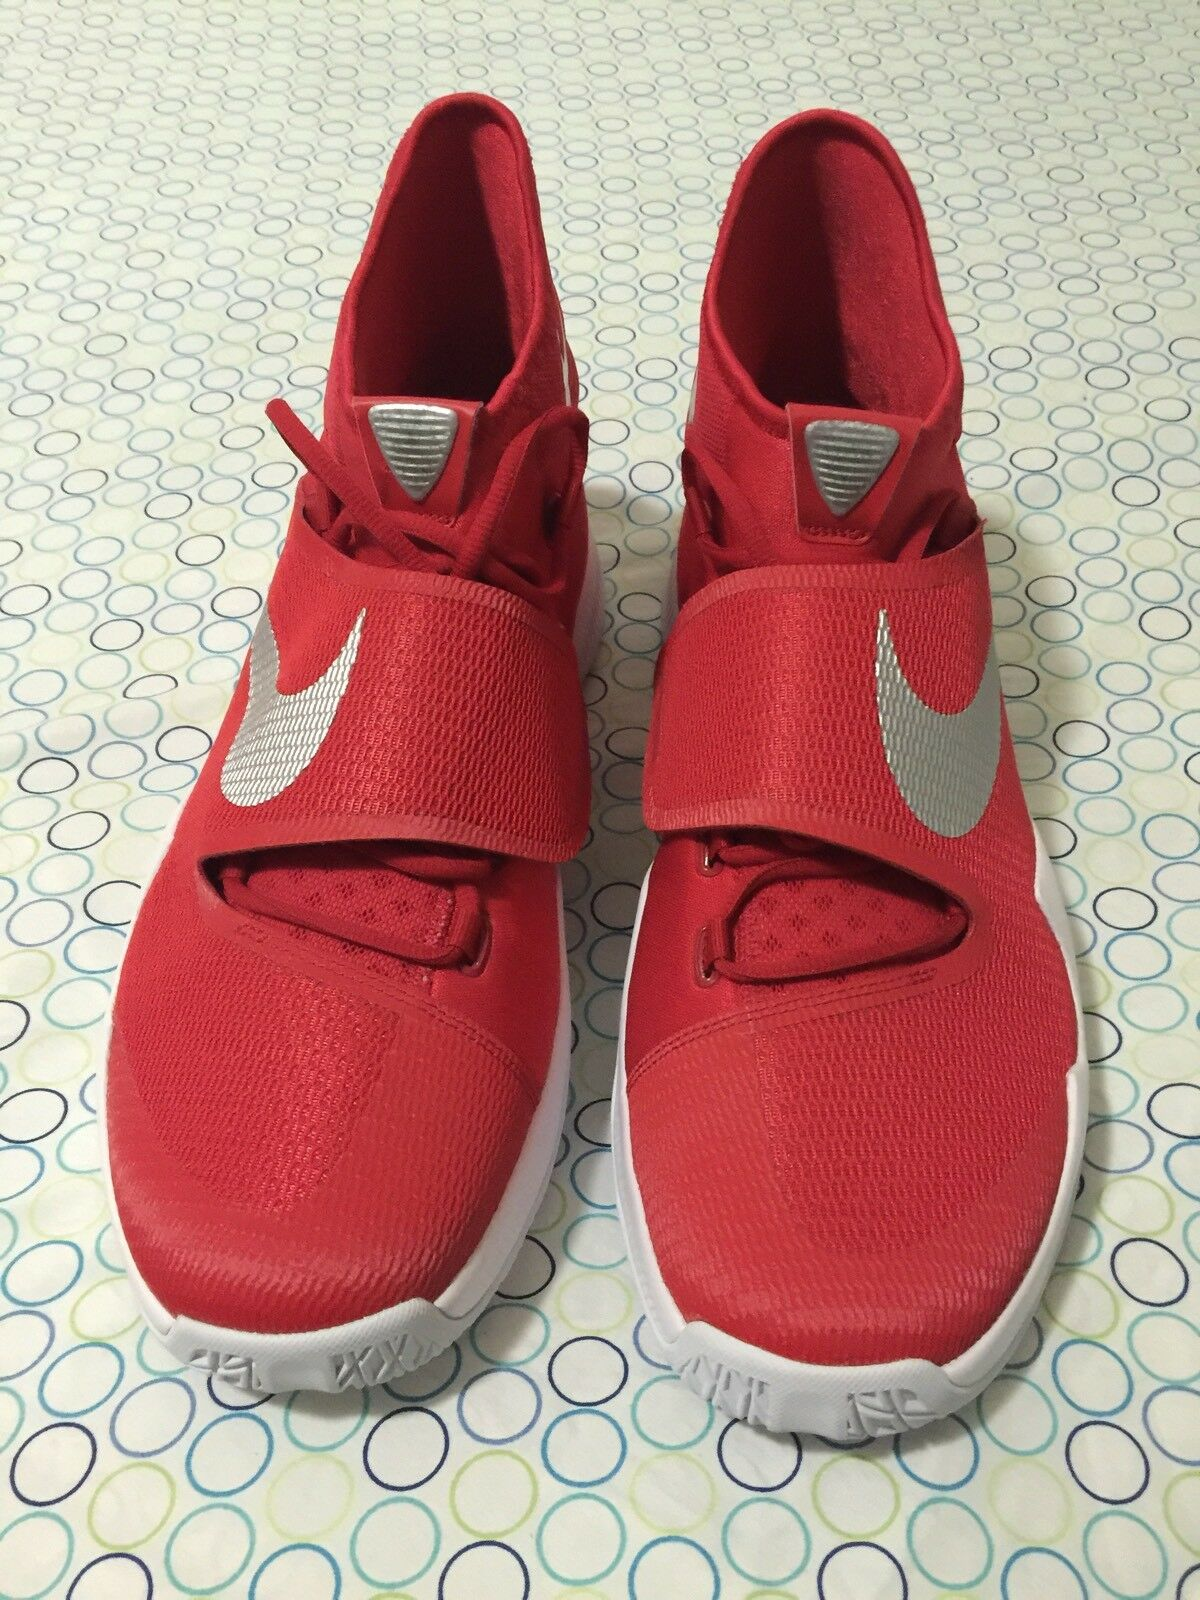 NIKE Zoom Hyperrev TB Red Men's Basketball Shoes New No Box 835439 603 - Sz 16.5 Casual wild